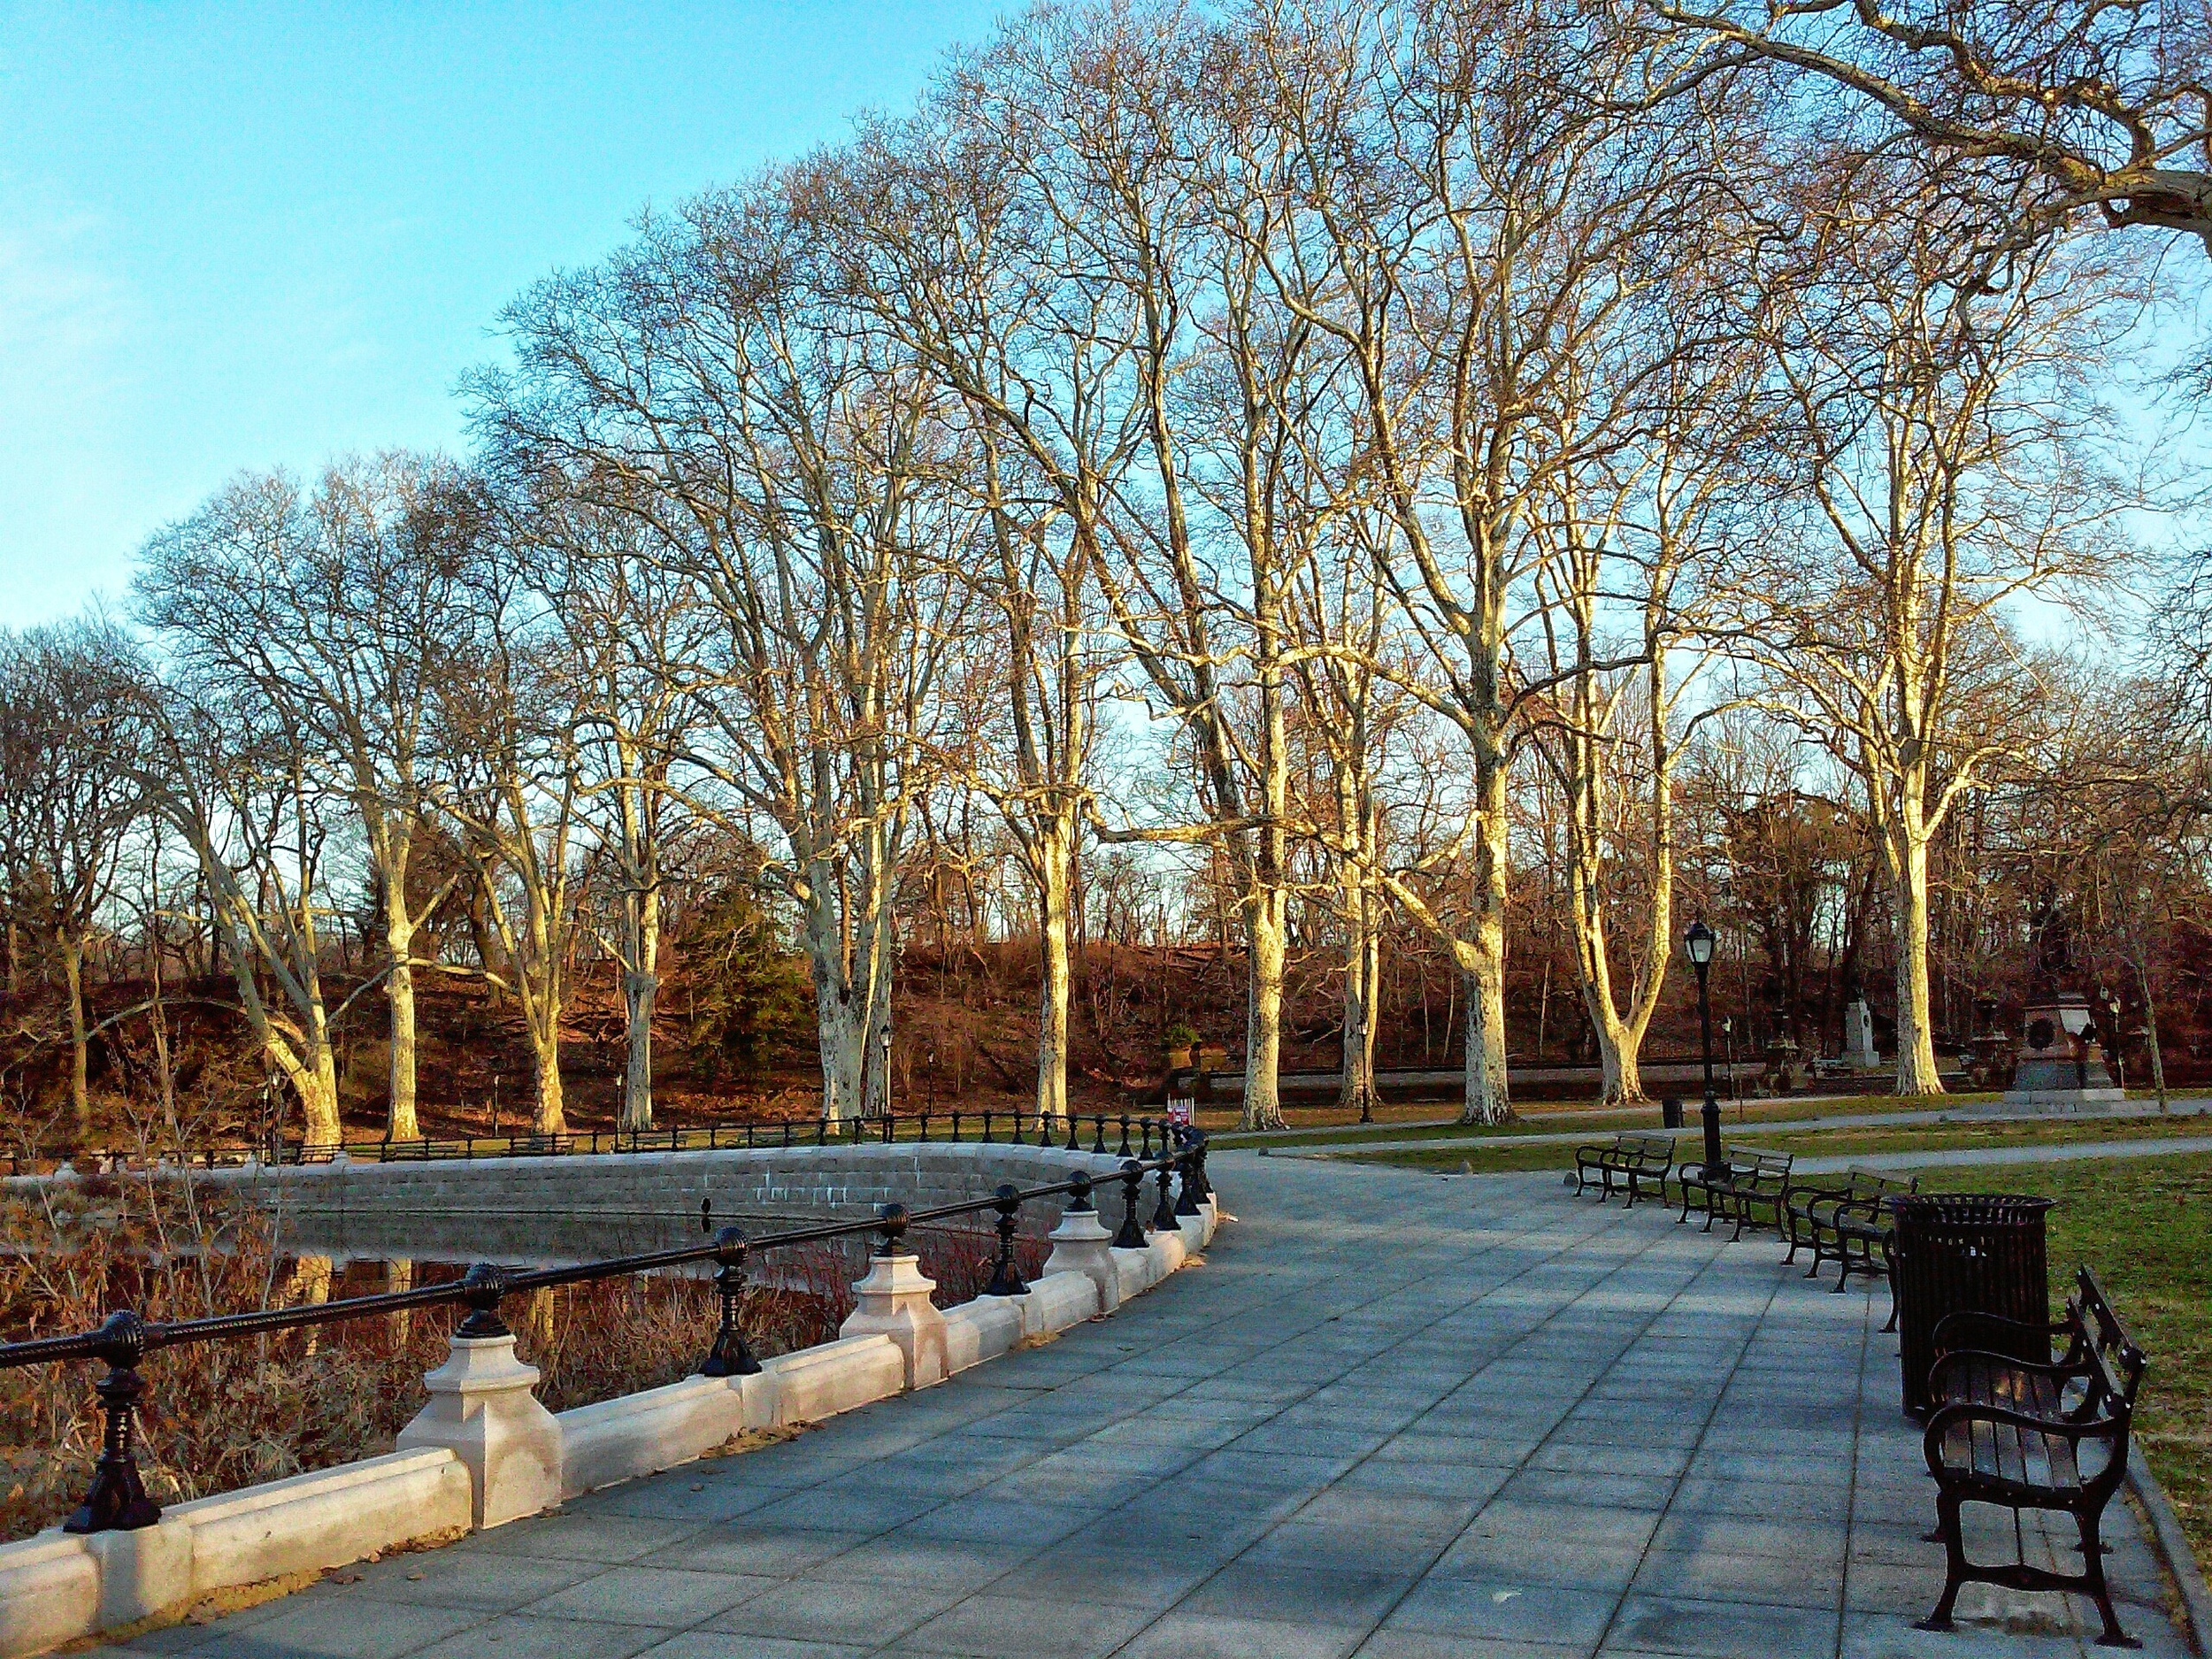 london-planes-in-prospect-park-easter-wbc.jpg